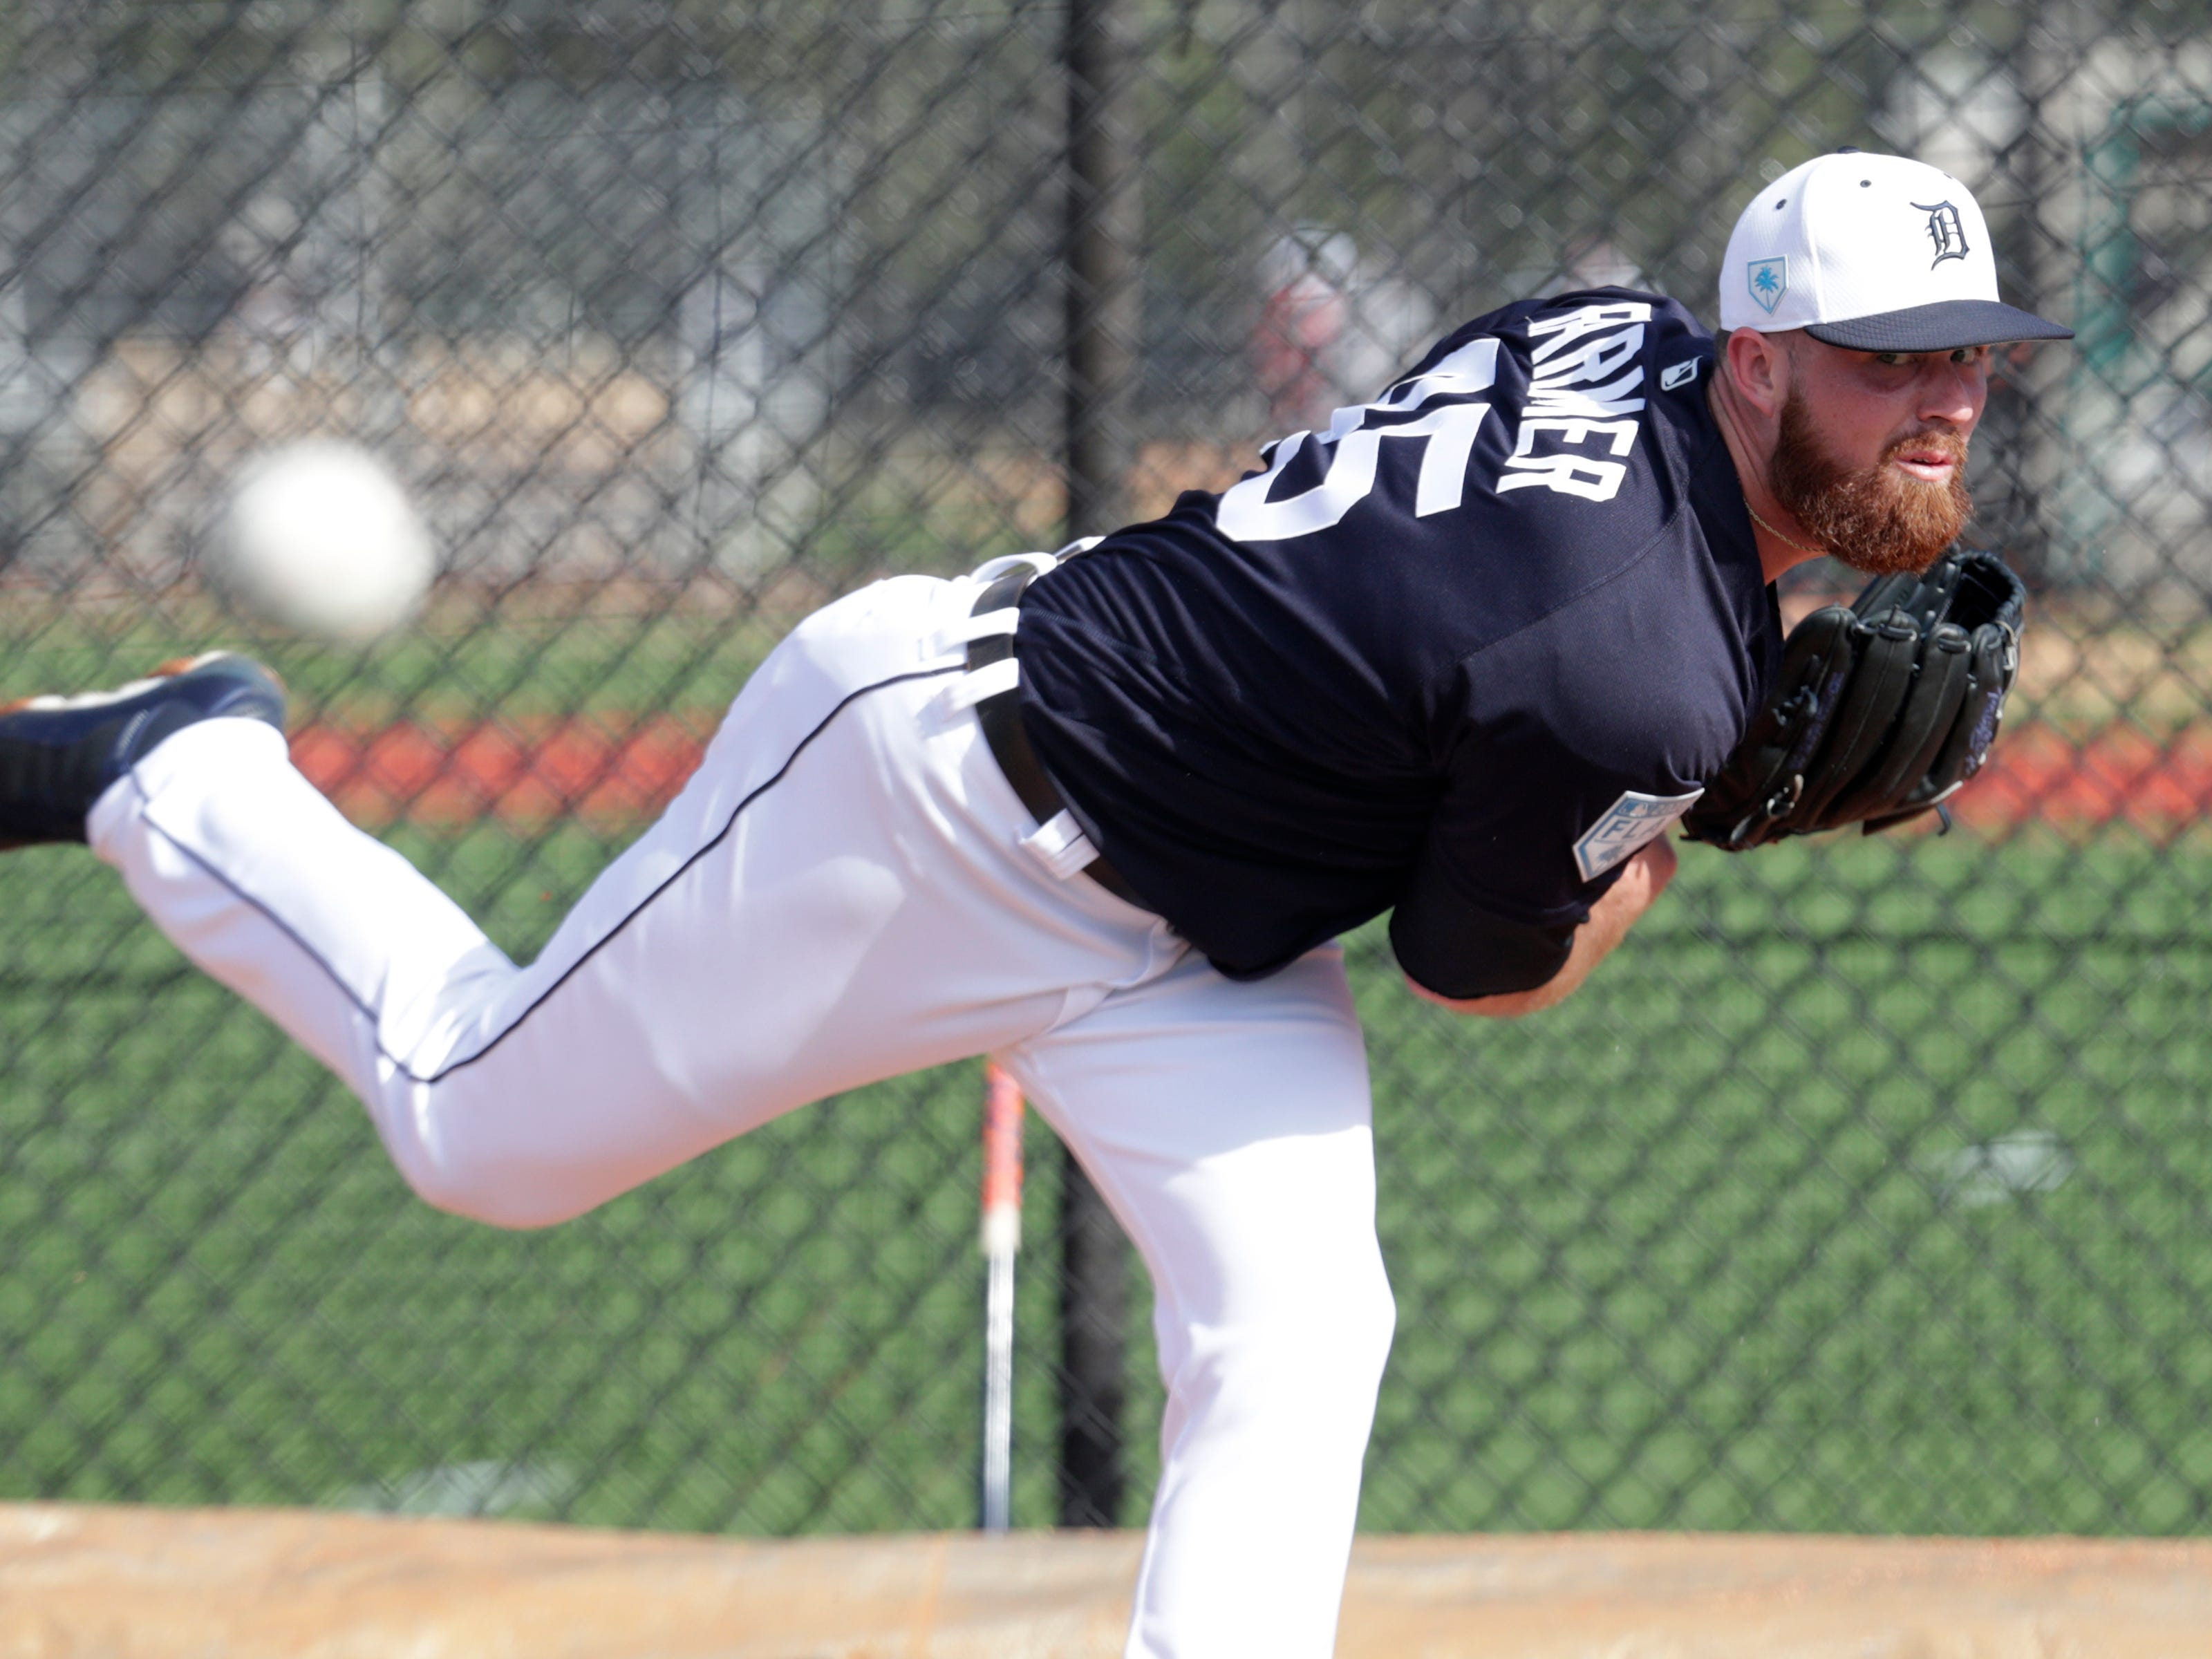 Detroit Tigers relief pitcher Buck Farmer throws in the bullpen.